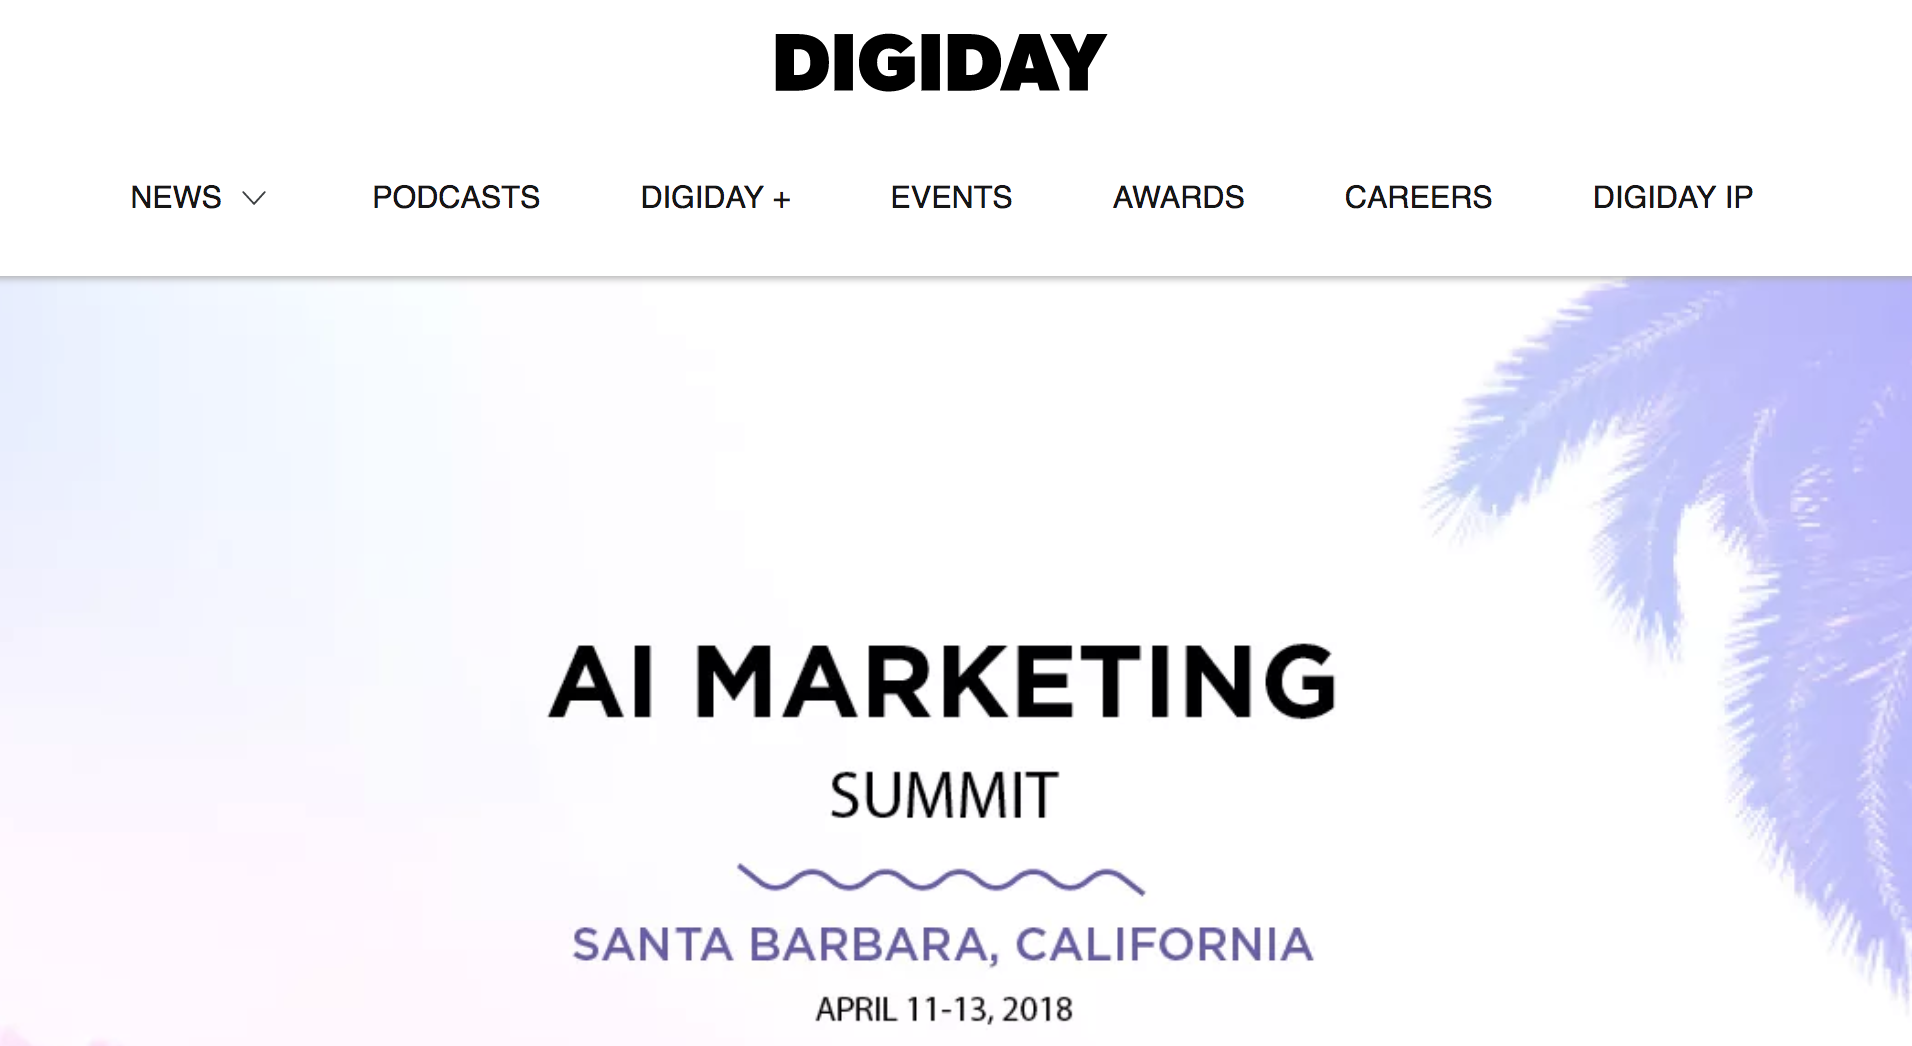 digiday.png